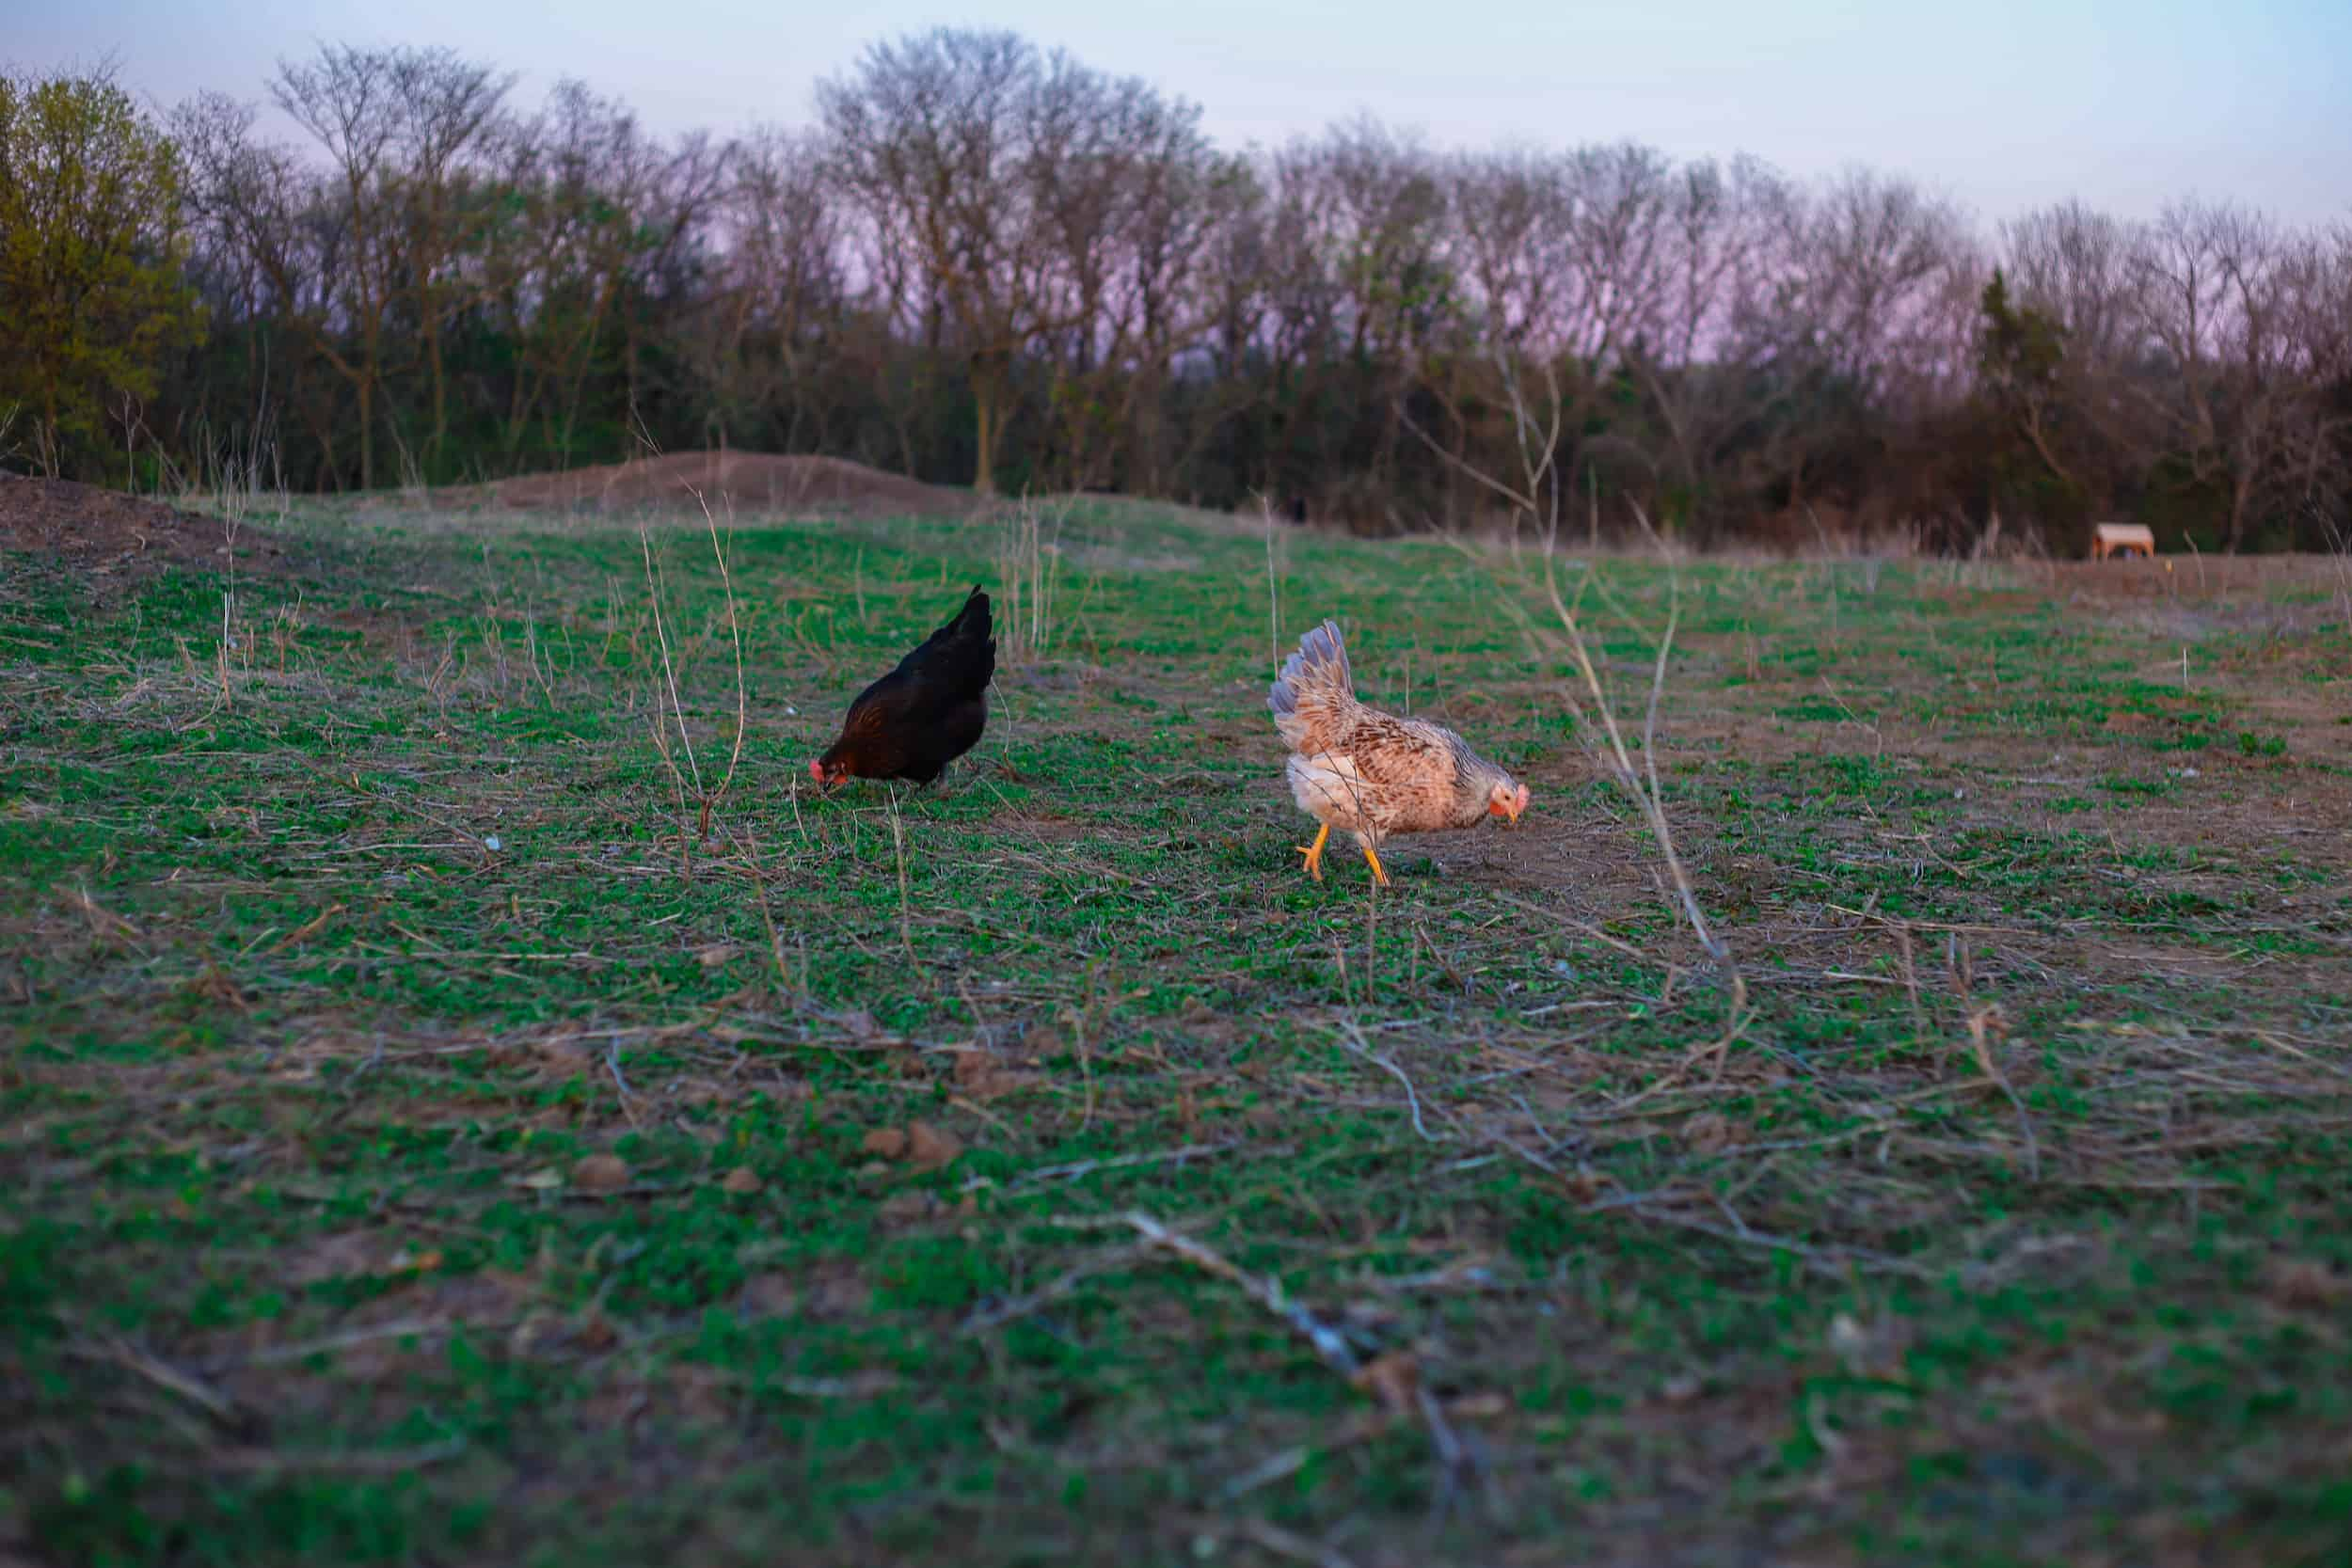 Pasture Raised Hens Foraging in Open Field